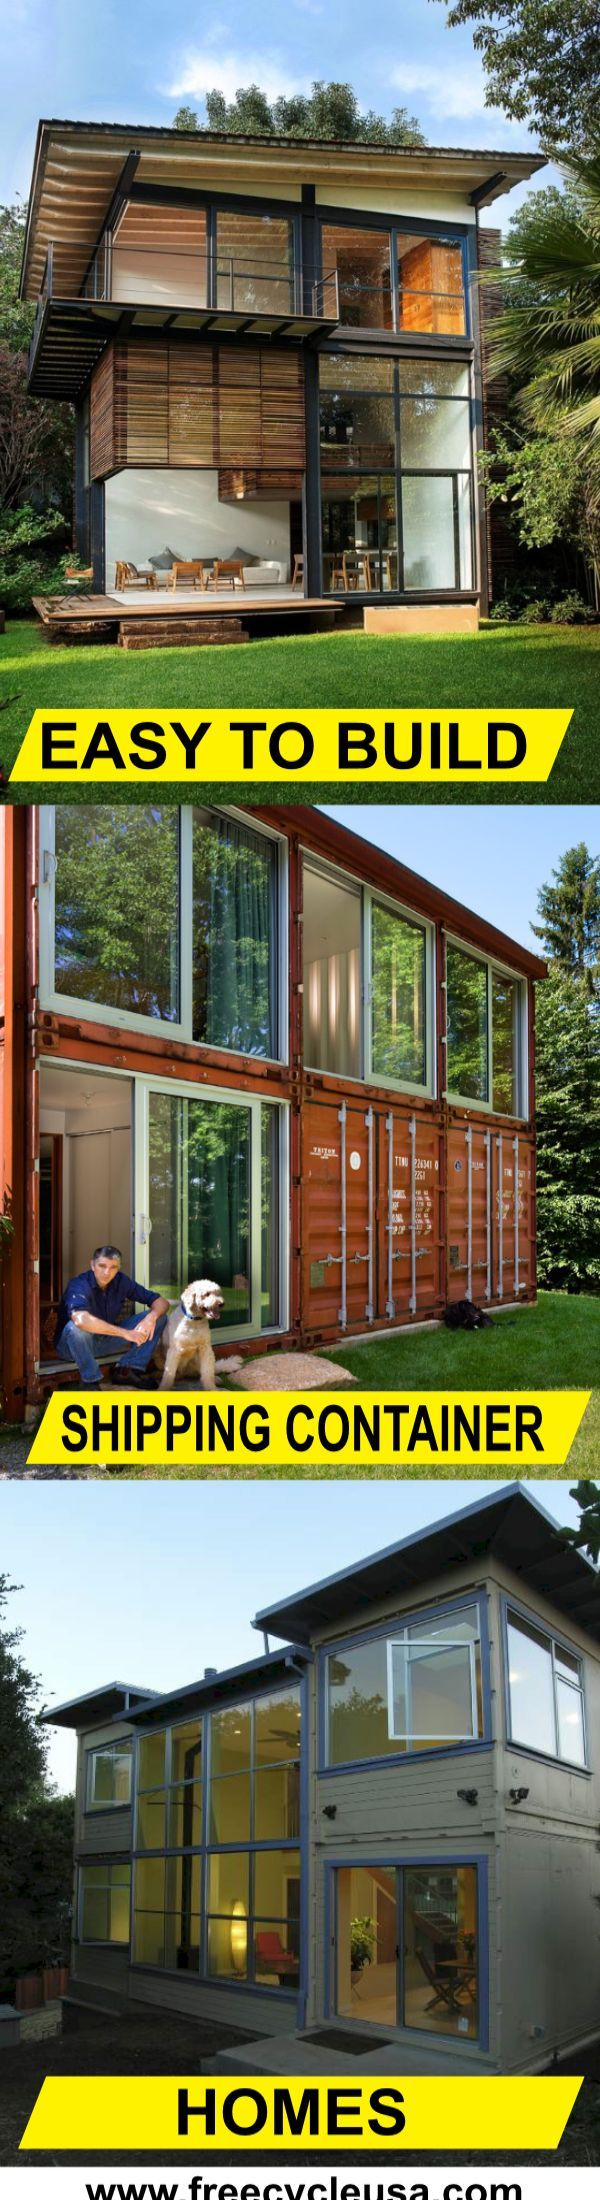 Lean how to build a Shipping Container Home with the best plans period.  #containerhome